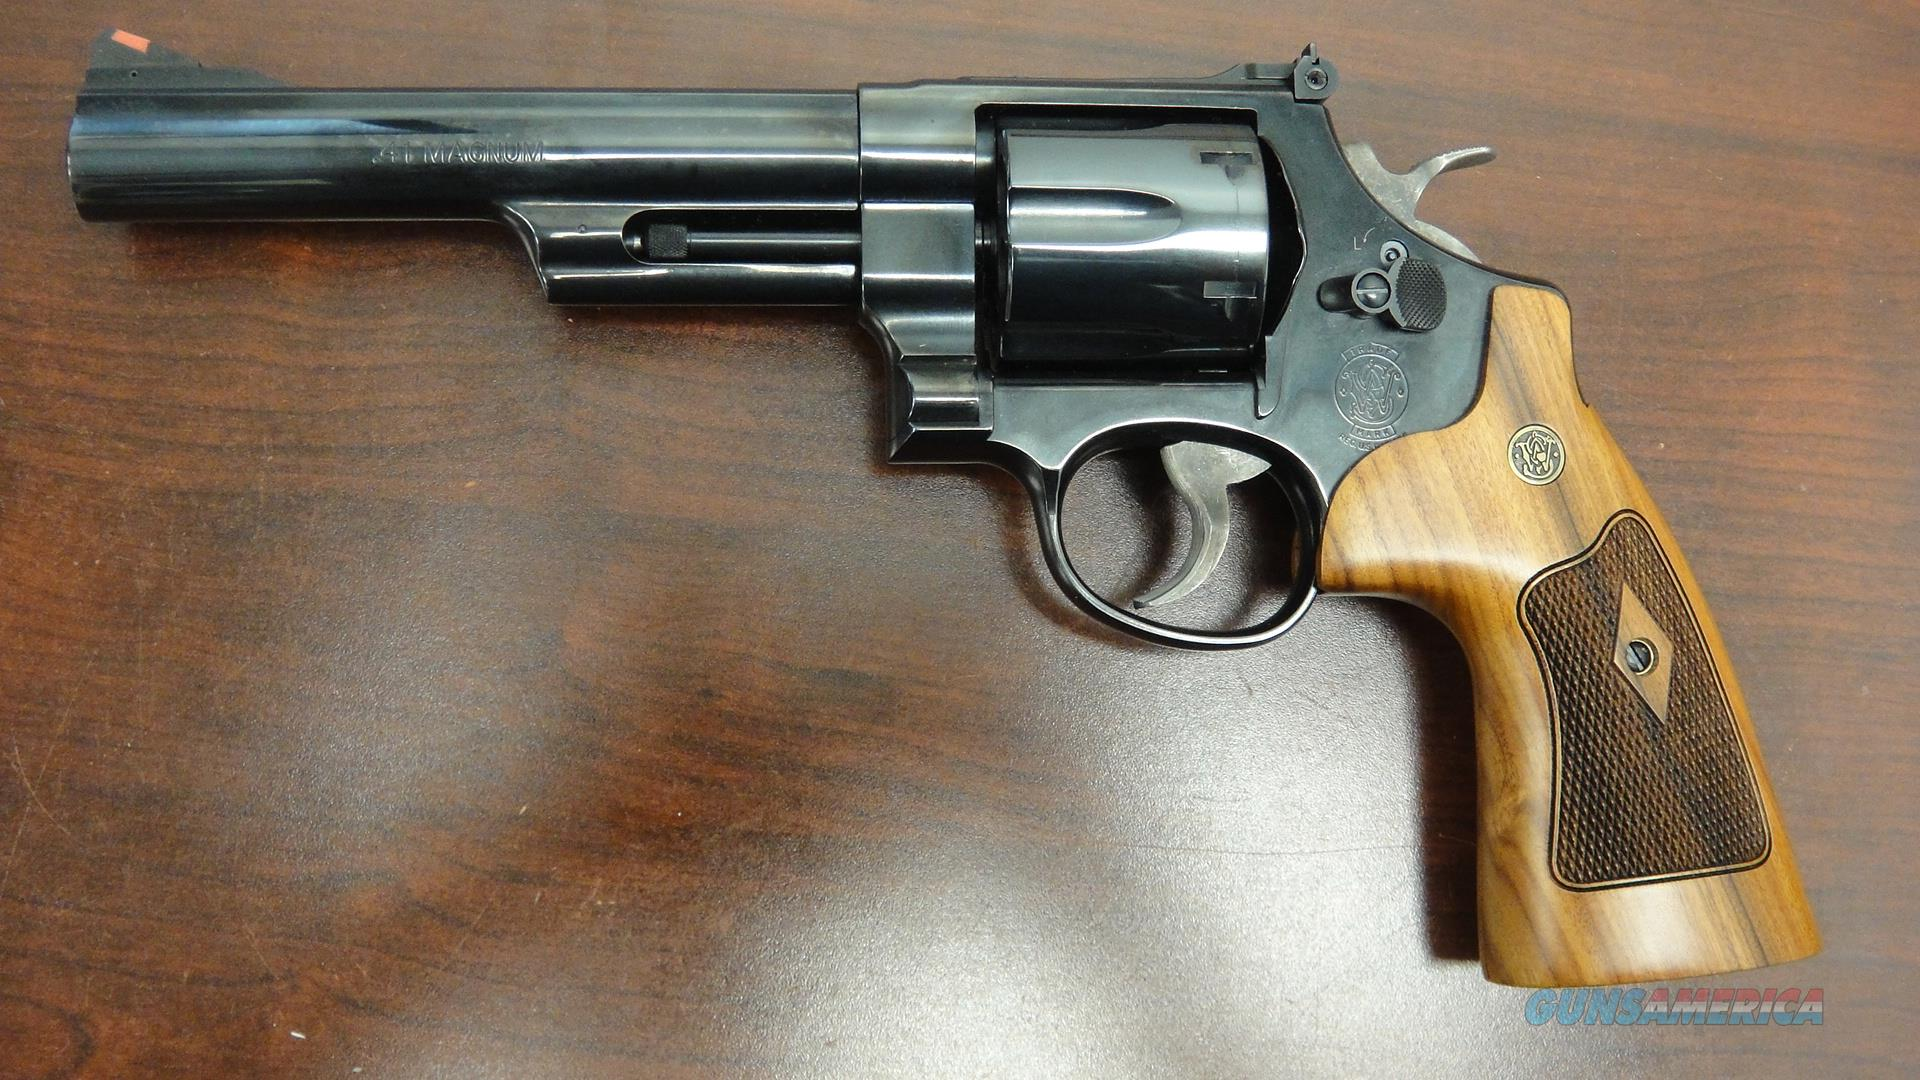 Smith and Wesson 57-6 .41 Magnum  Guns > Pistols > Smith & Wesson Revolvers > Full Frame Revolver